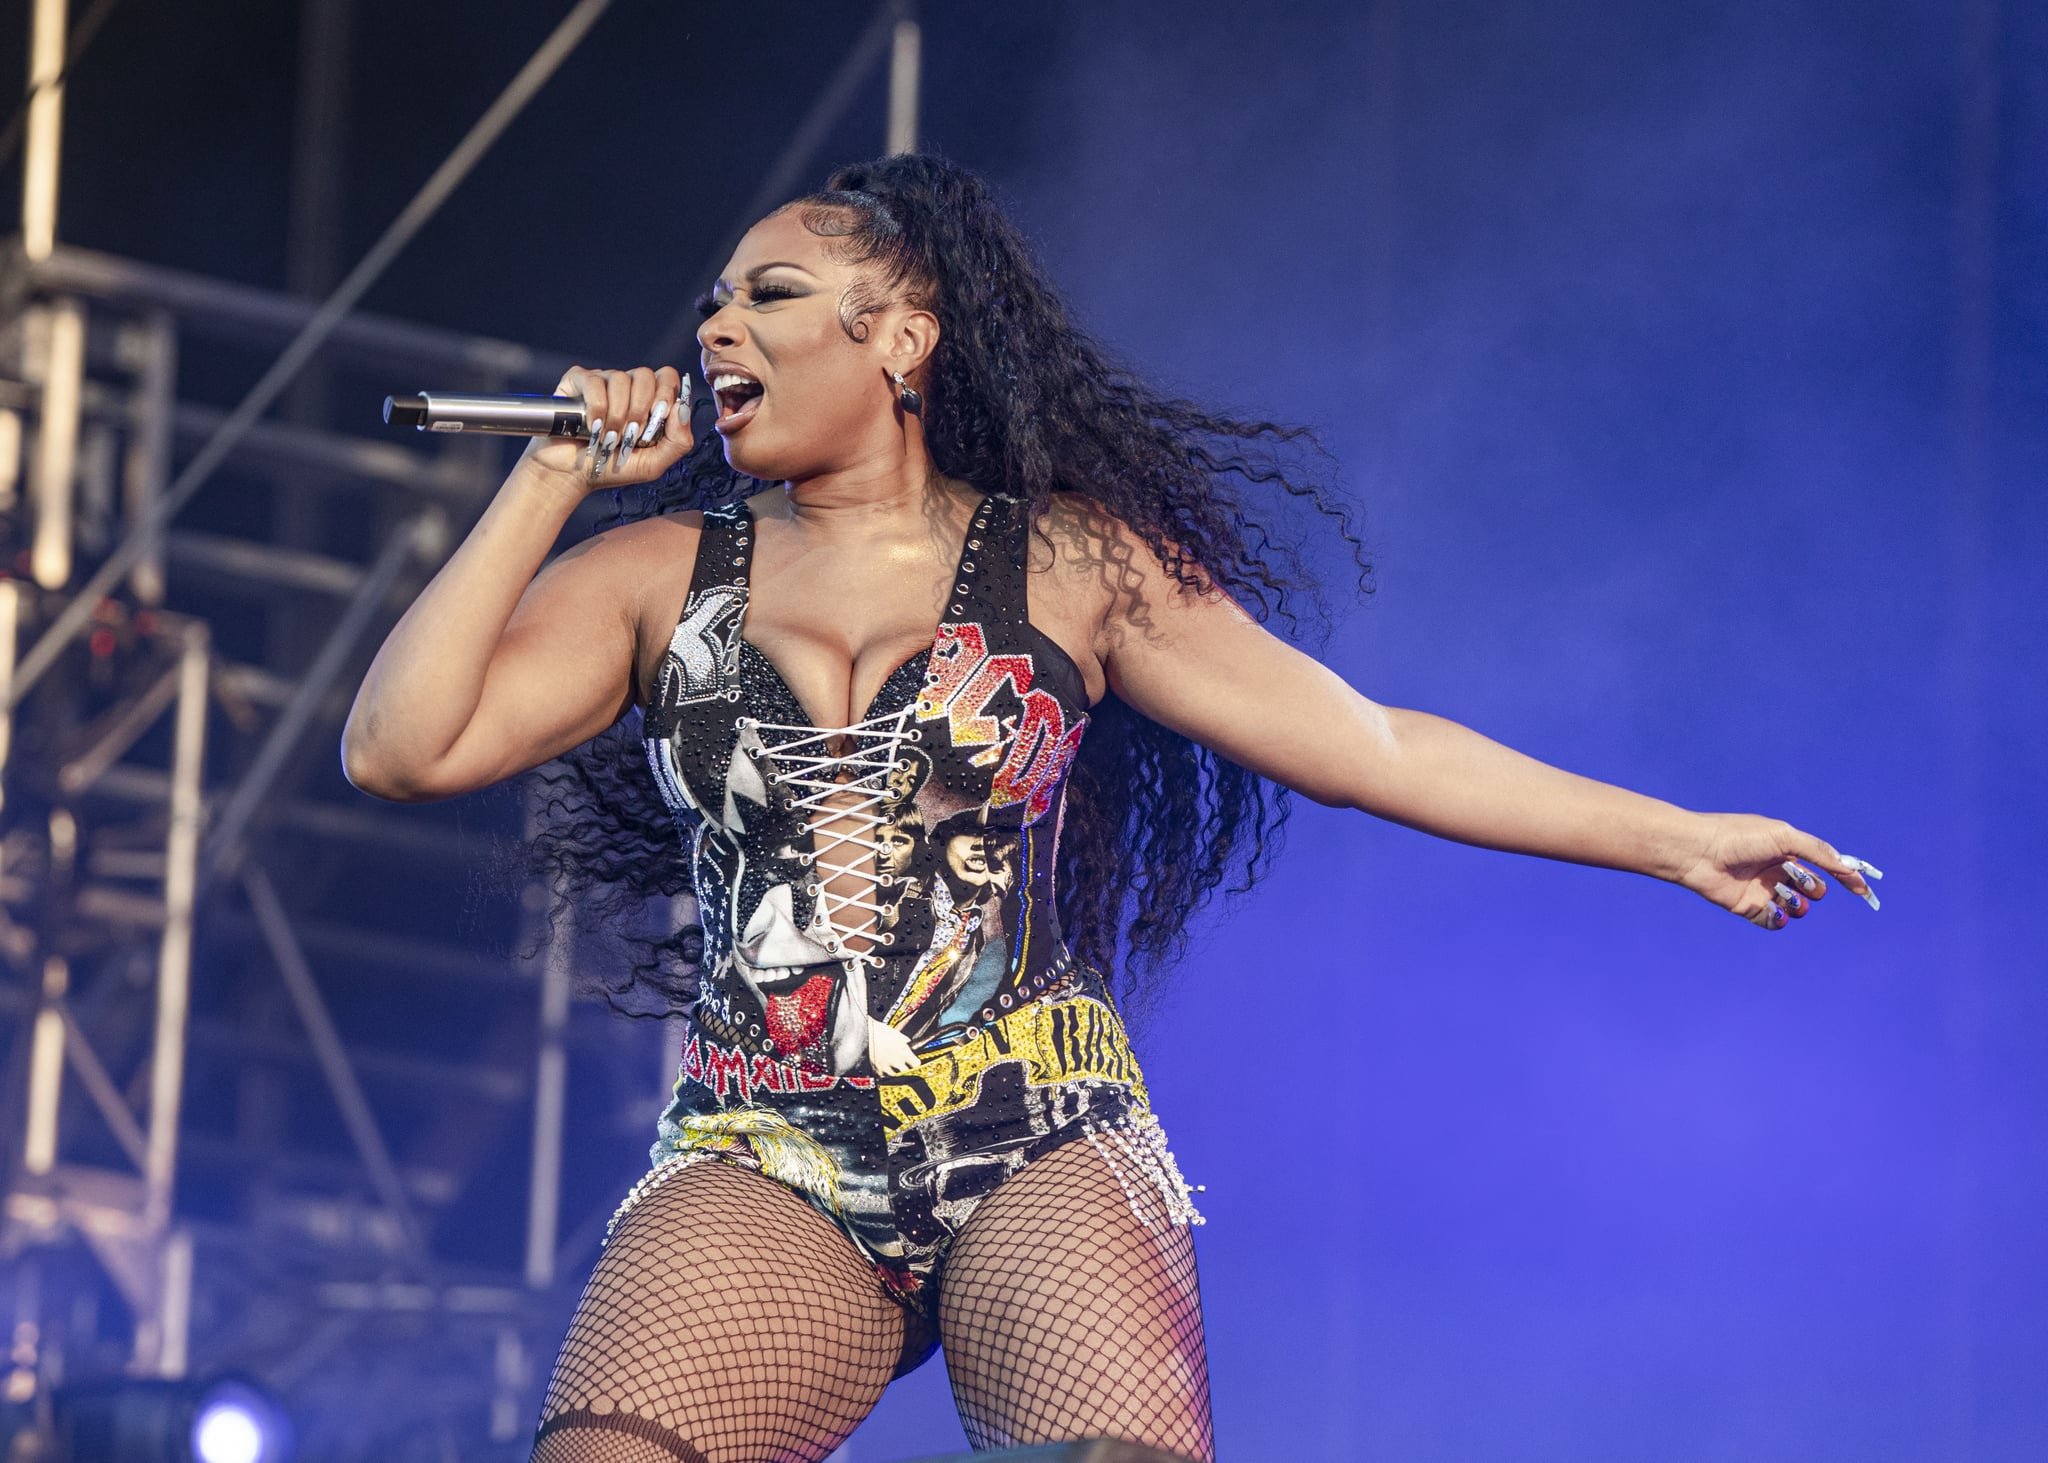 CHICAGO, ILLINOIS - JULY 31: Megan Thee Stallion performs on day 3 of Lollapalooza at Grant Park on July 31, 2021 in Chicago, Illinois. (Photo by Scott Legato/Getty Images)